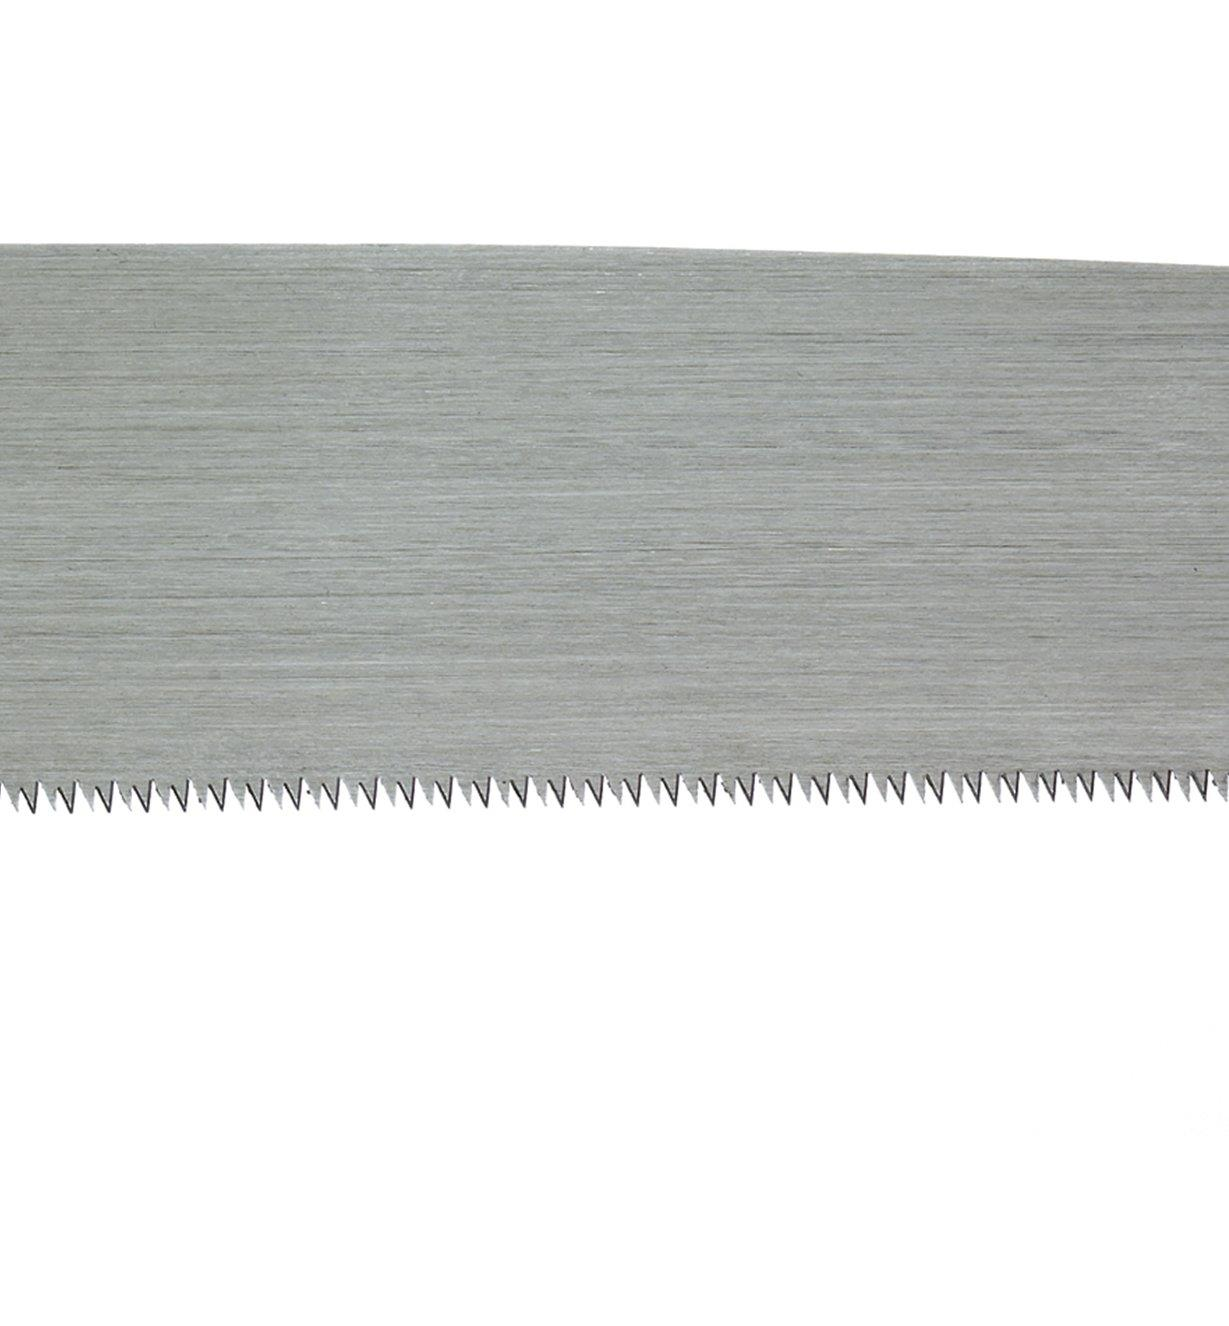 60T1901 - Japanese Flush-Cutting Saw